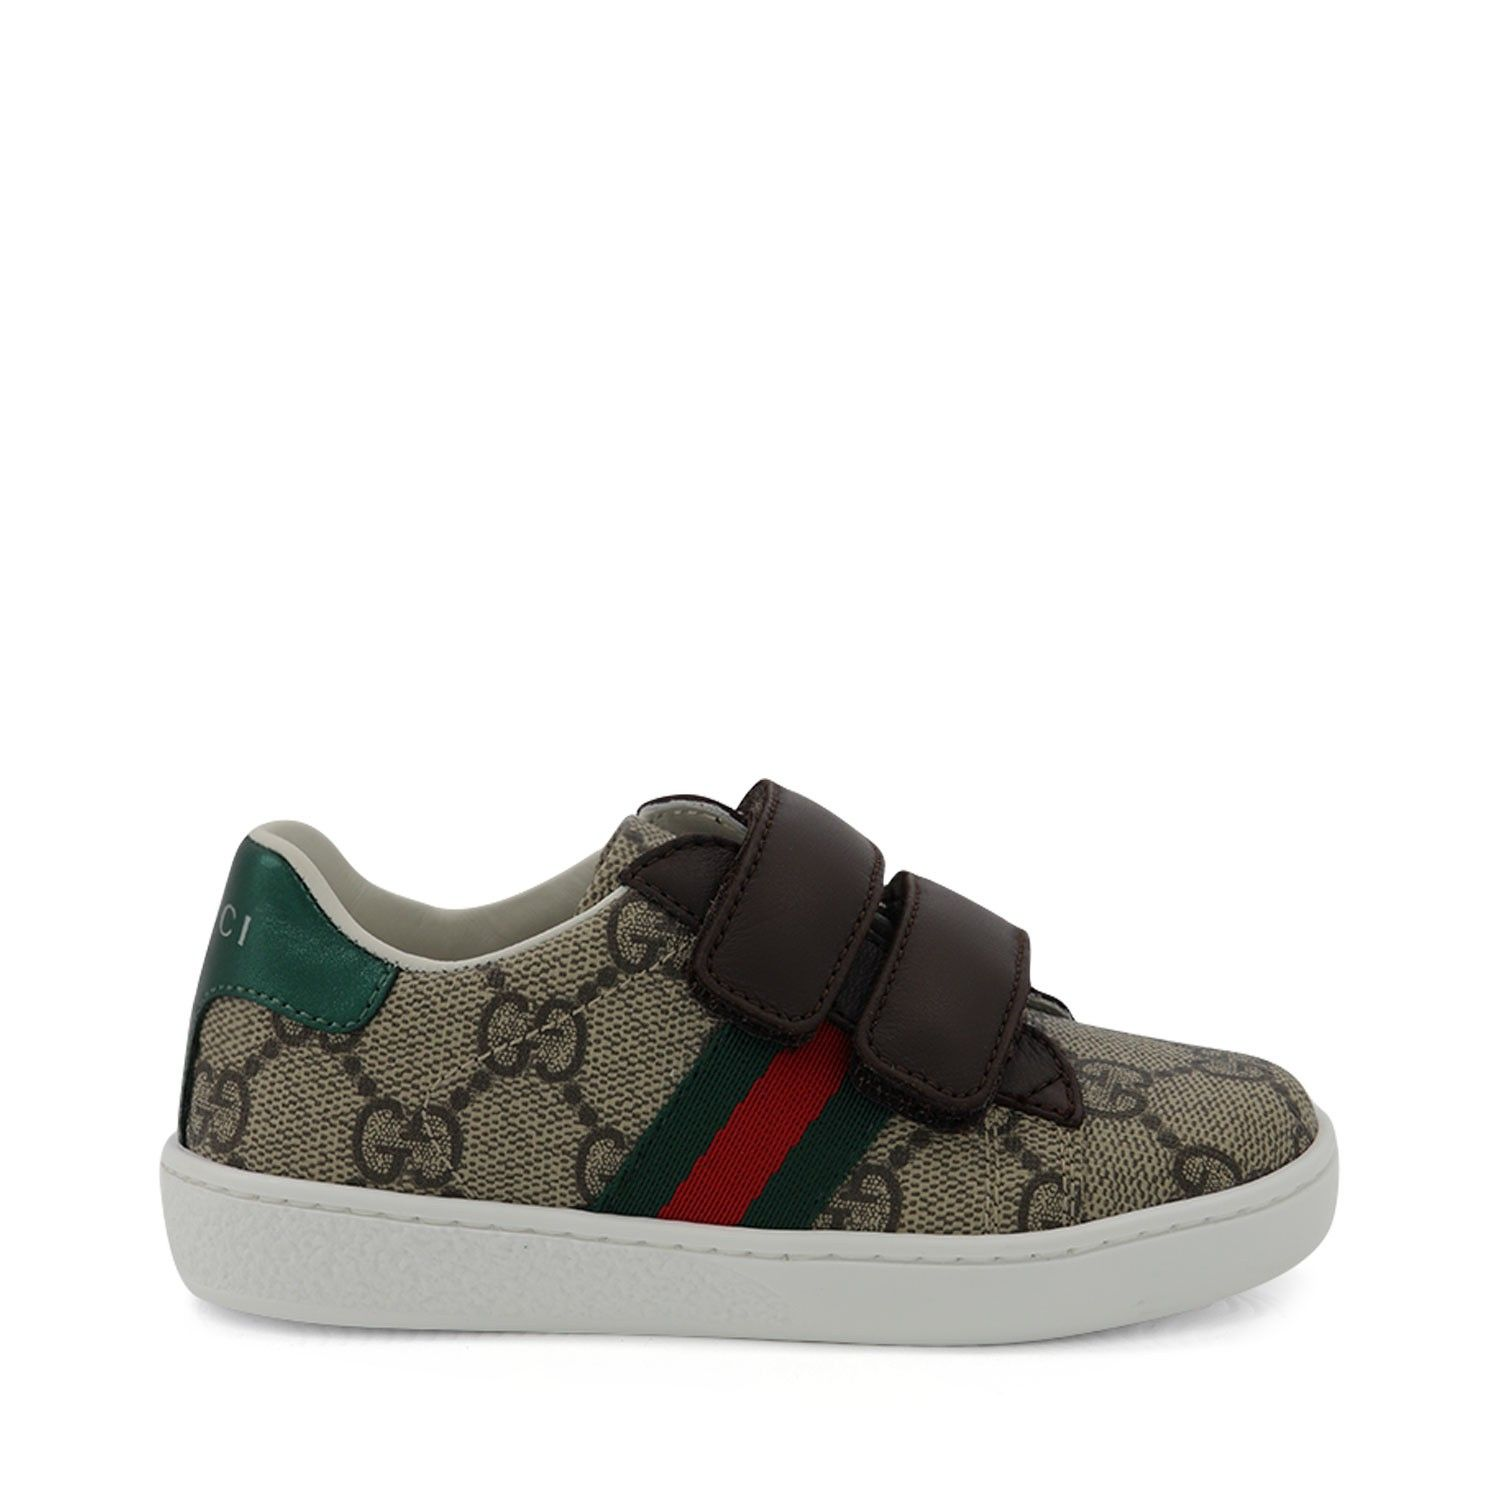 Picture of Gucci 463088 9C220 kids sneakers beige